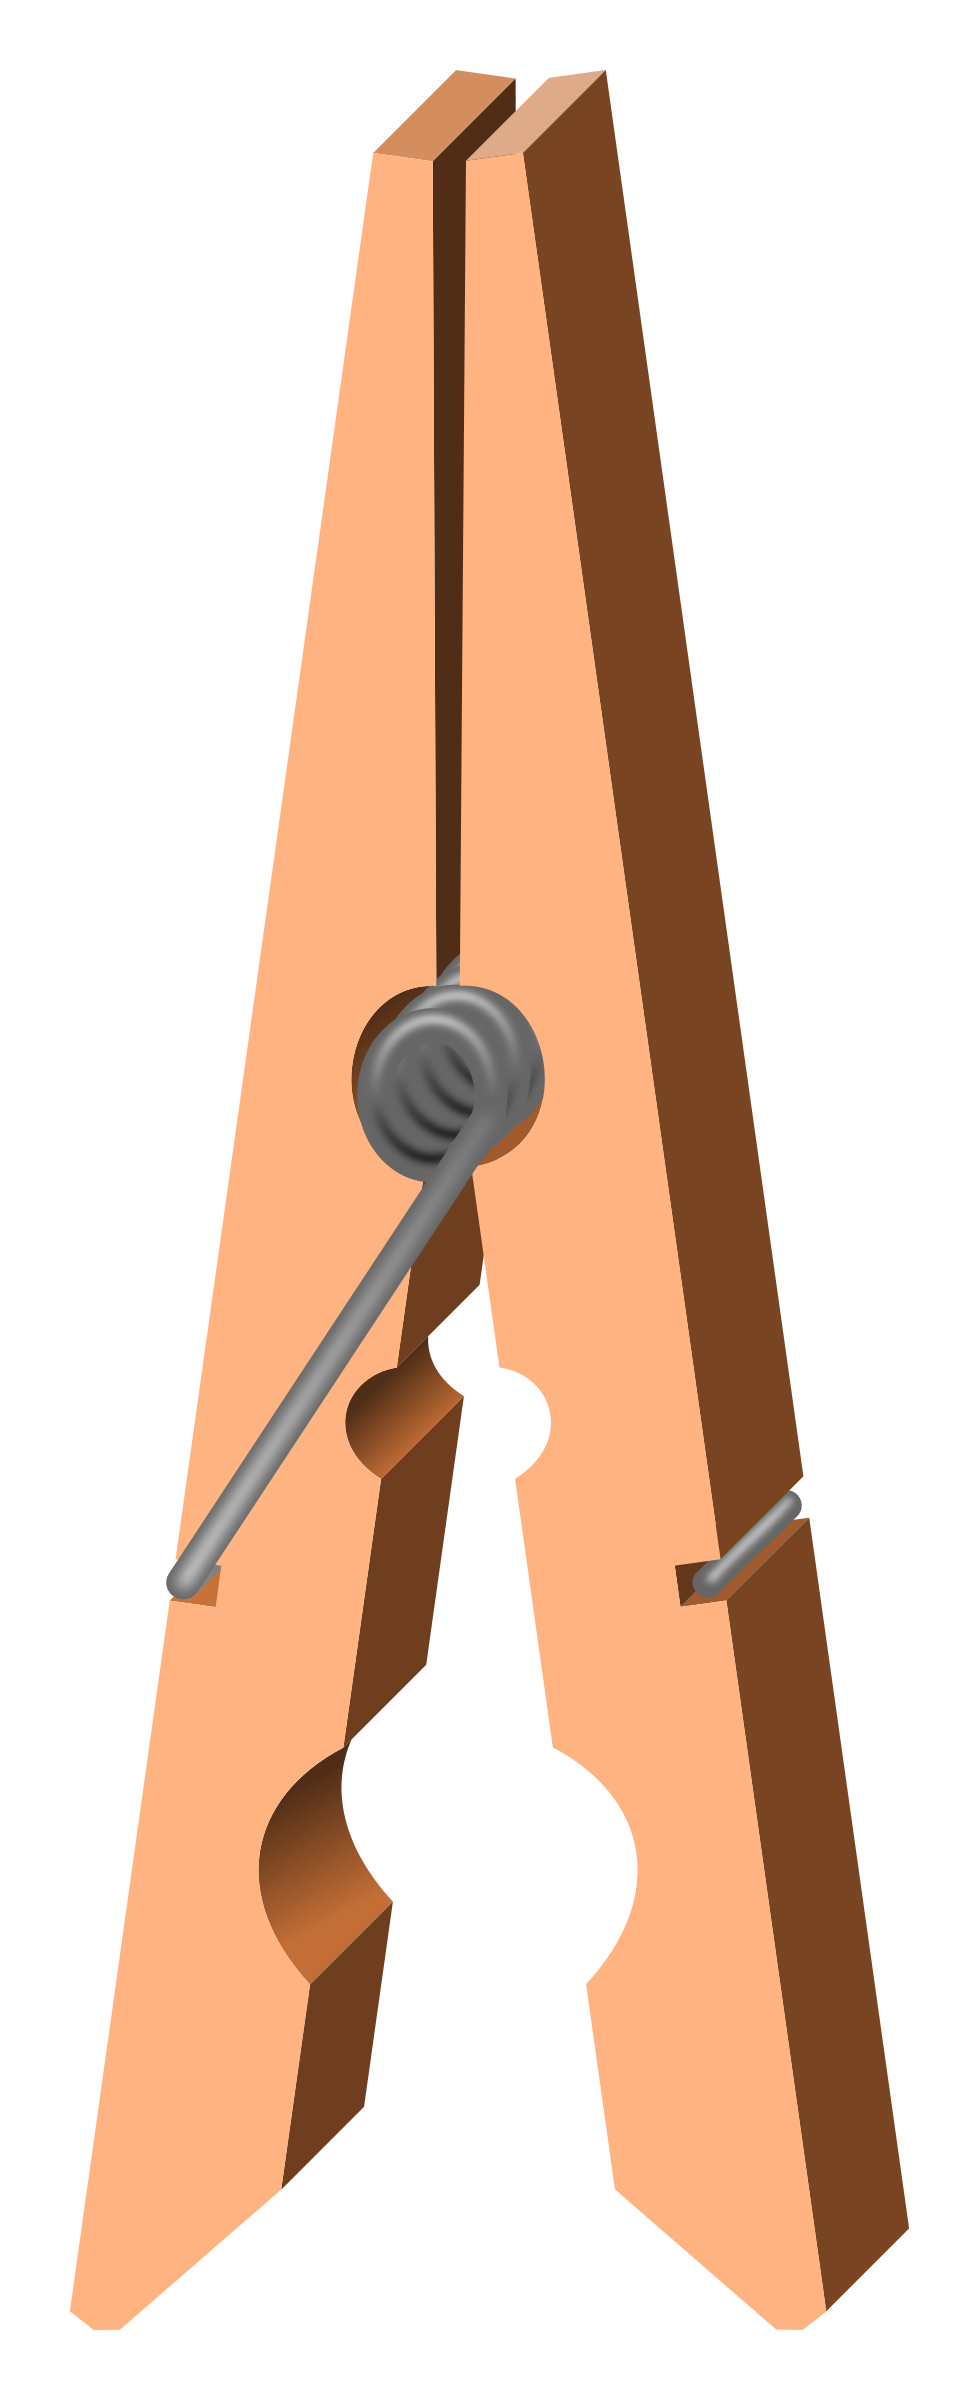 png freeuse download Clothespin clipart. Clothes peg open big.